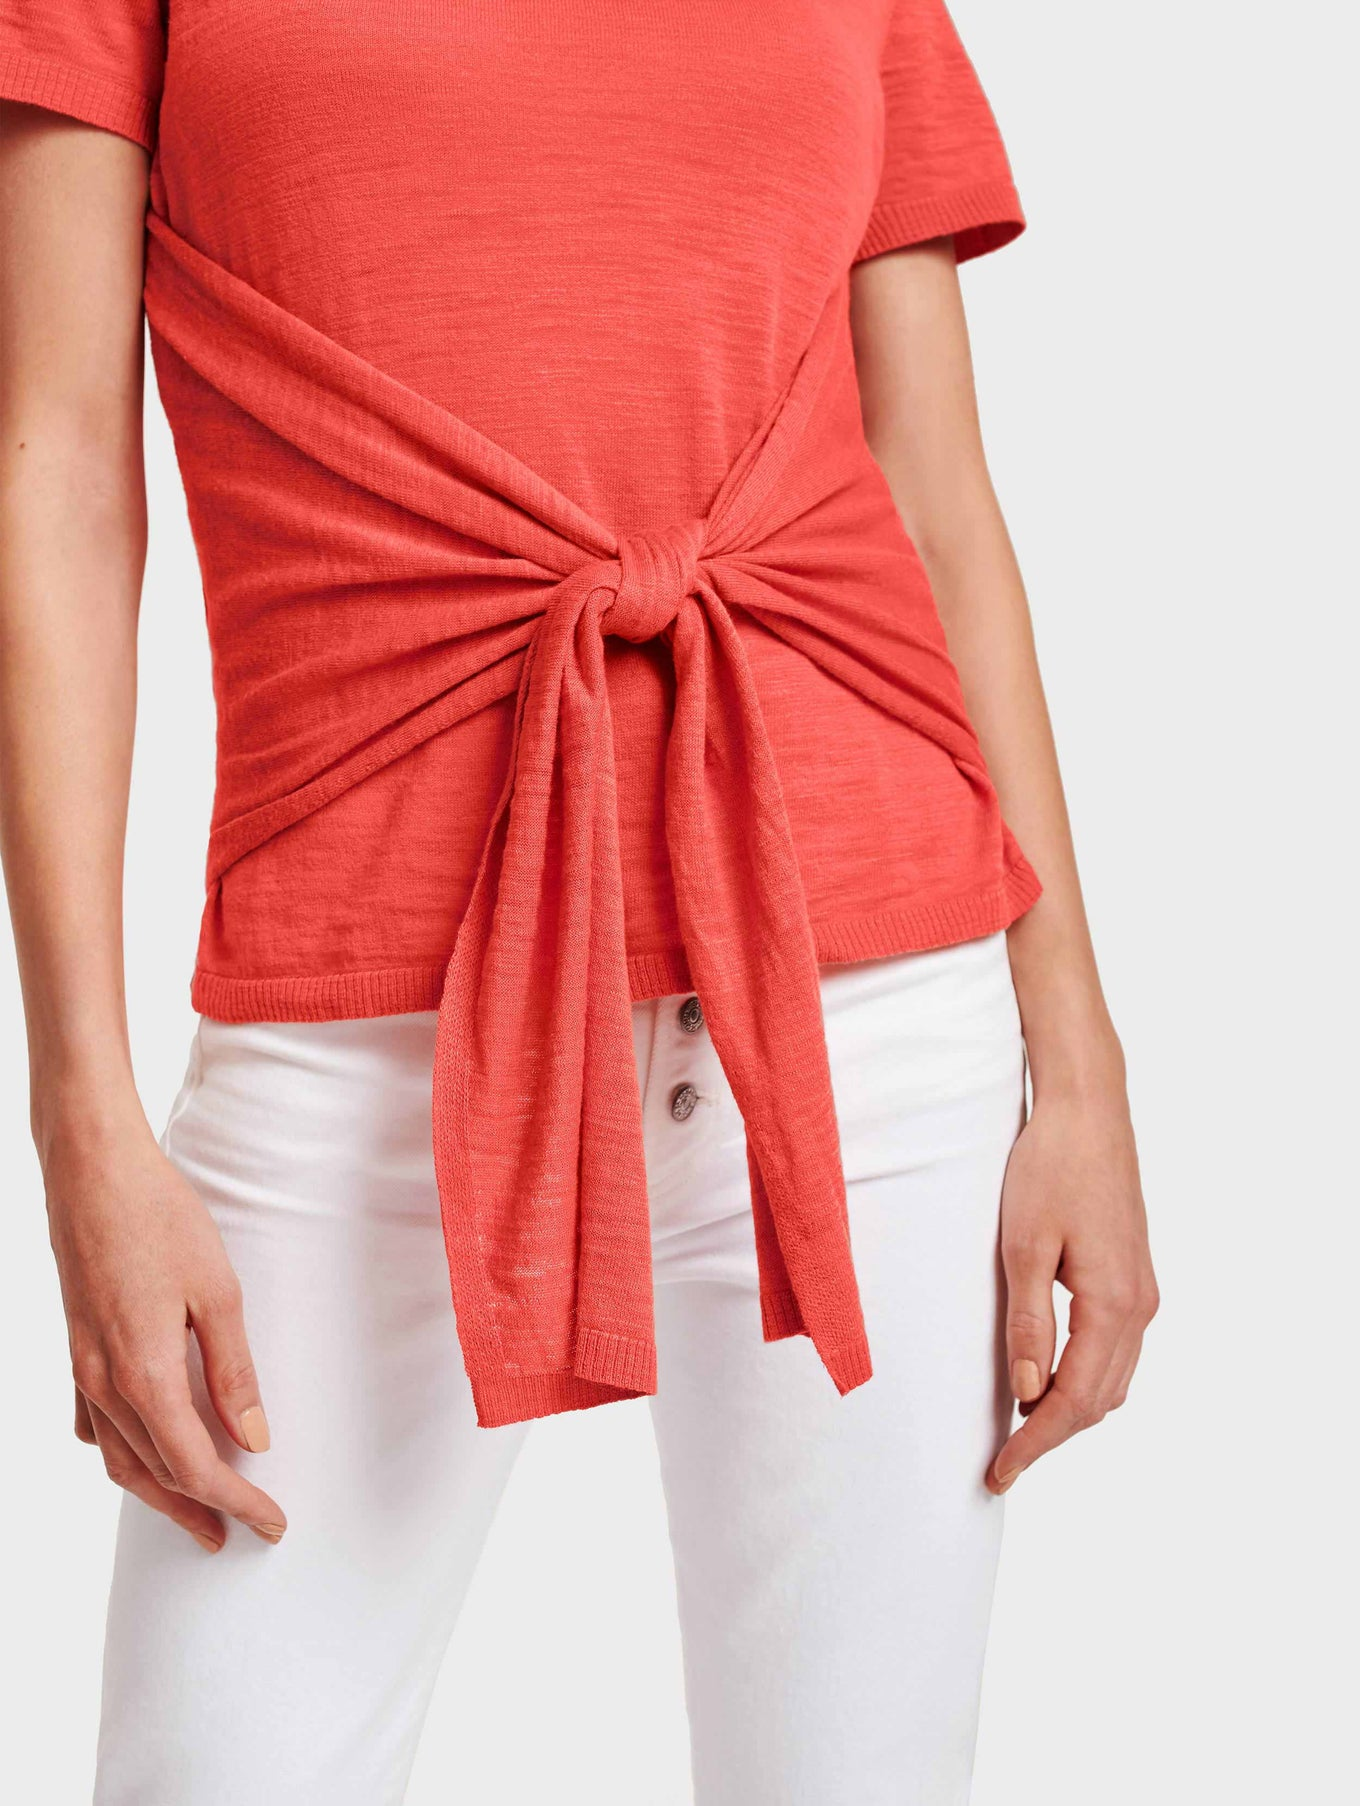 Cotton Slub Tie Front Tee - Rose - Image 4